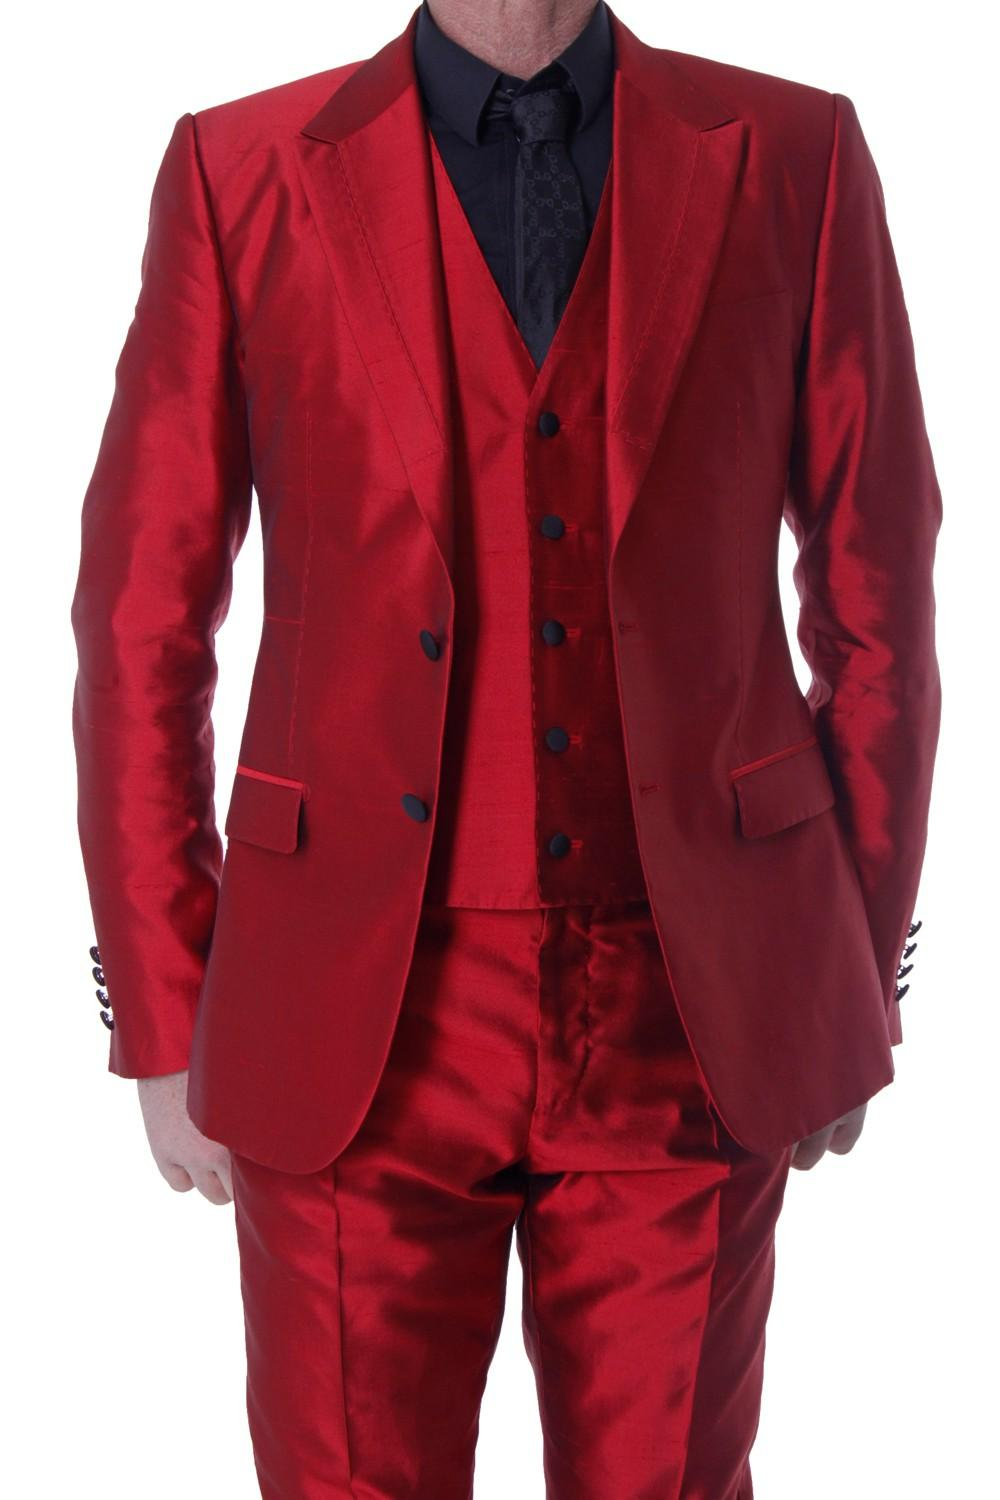 2015 Red Wedding Suits For Men Peaked Lapel Grooms Tuxedos Three ...